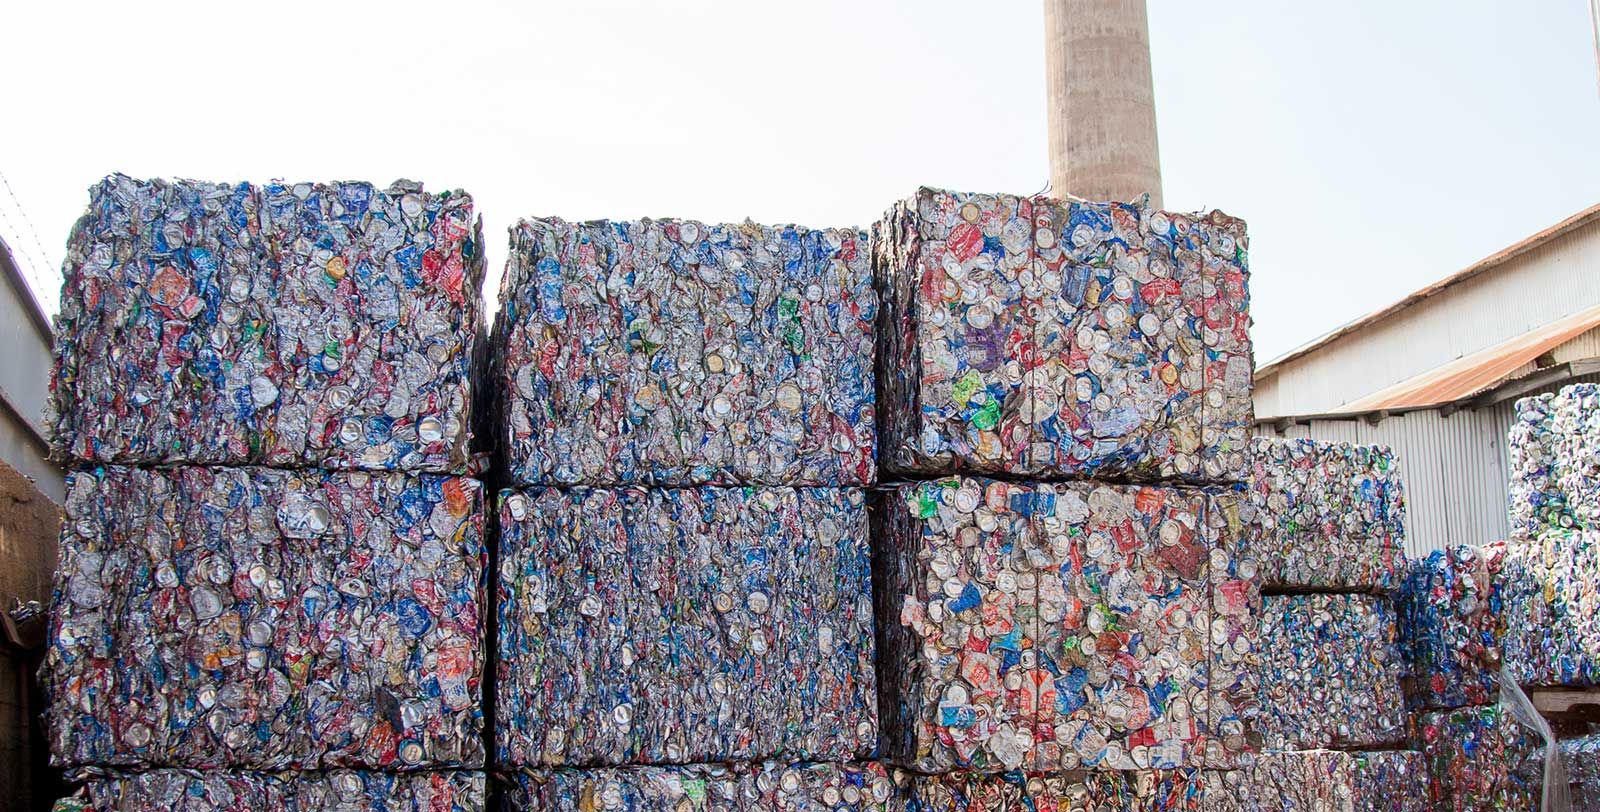 Commercial Metal Recycling Service in Austin TX